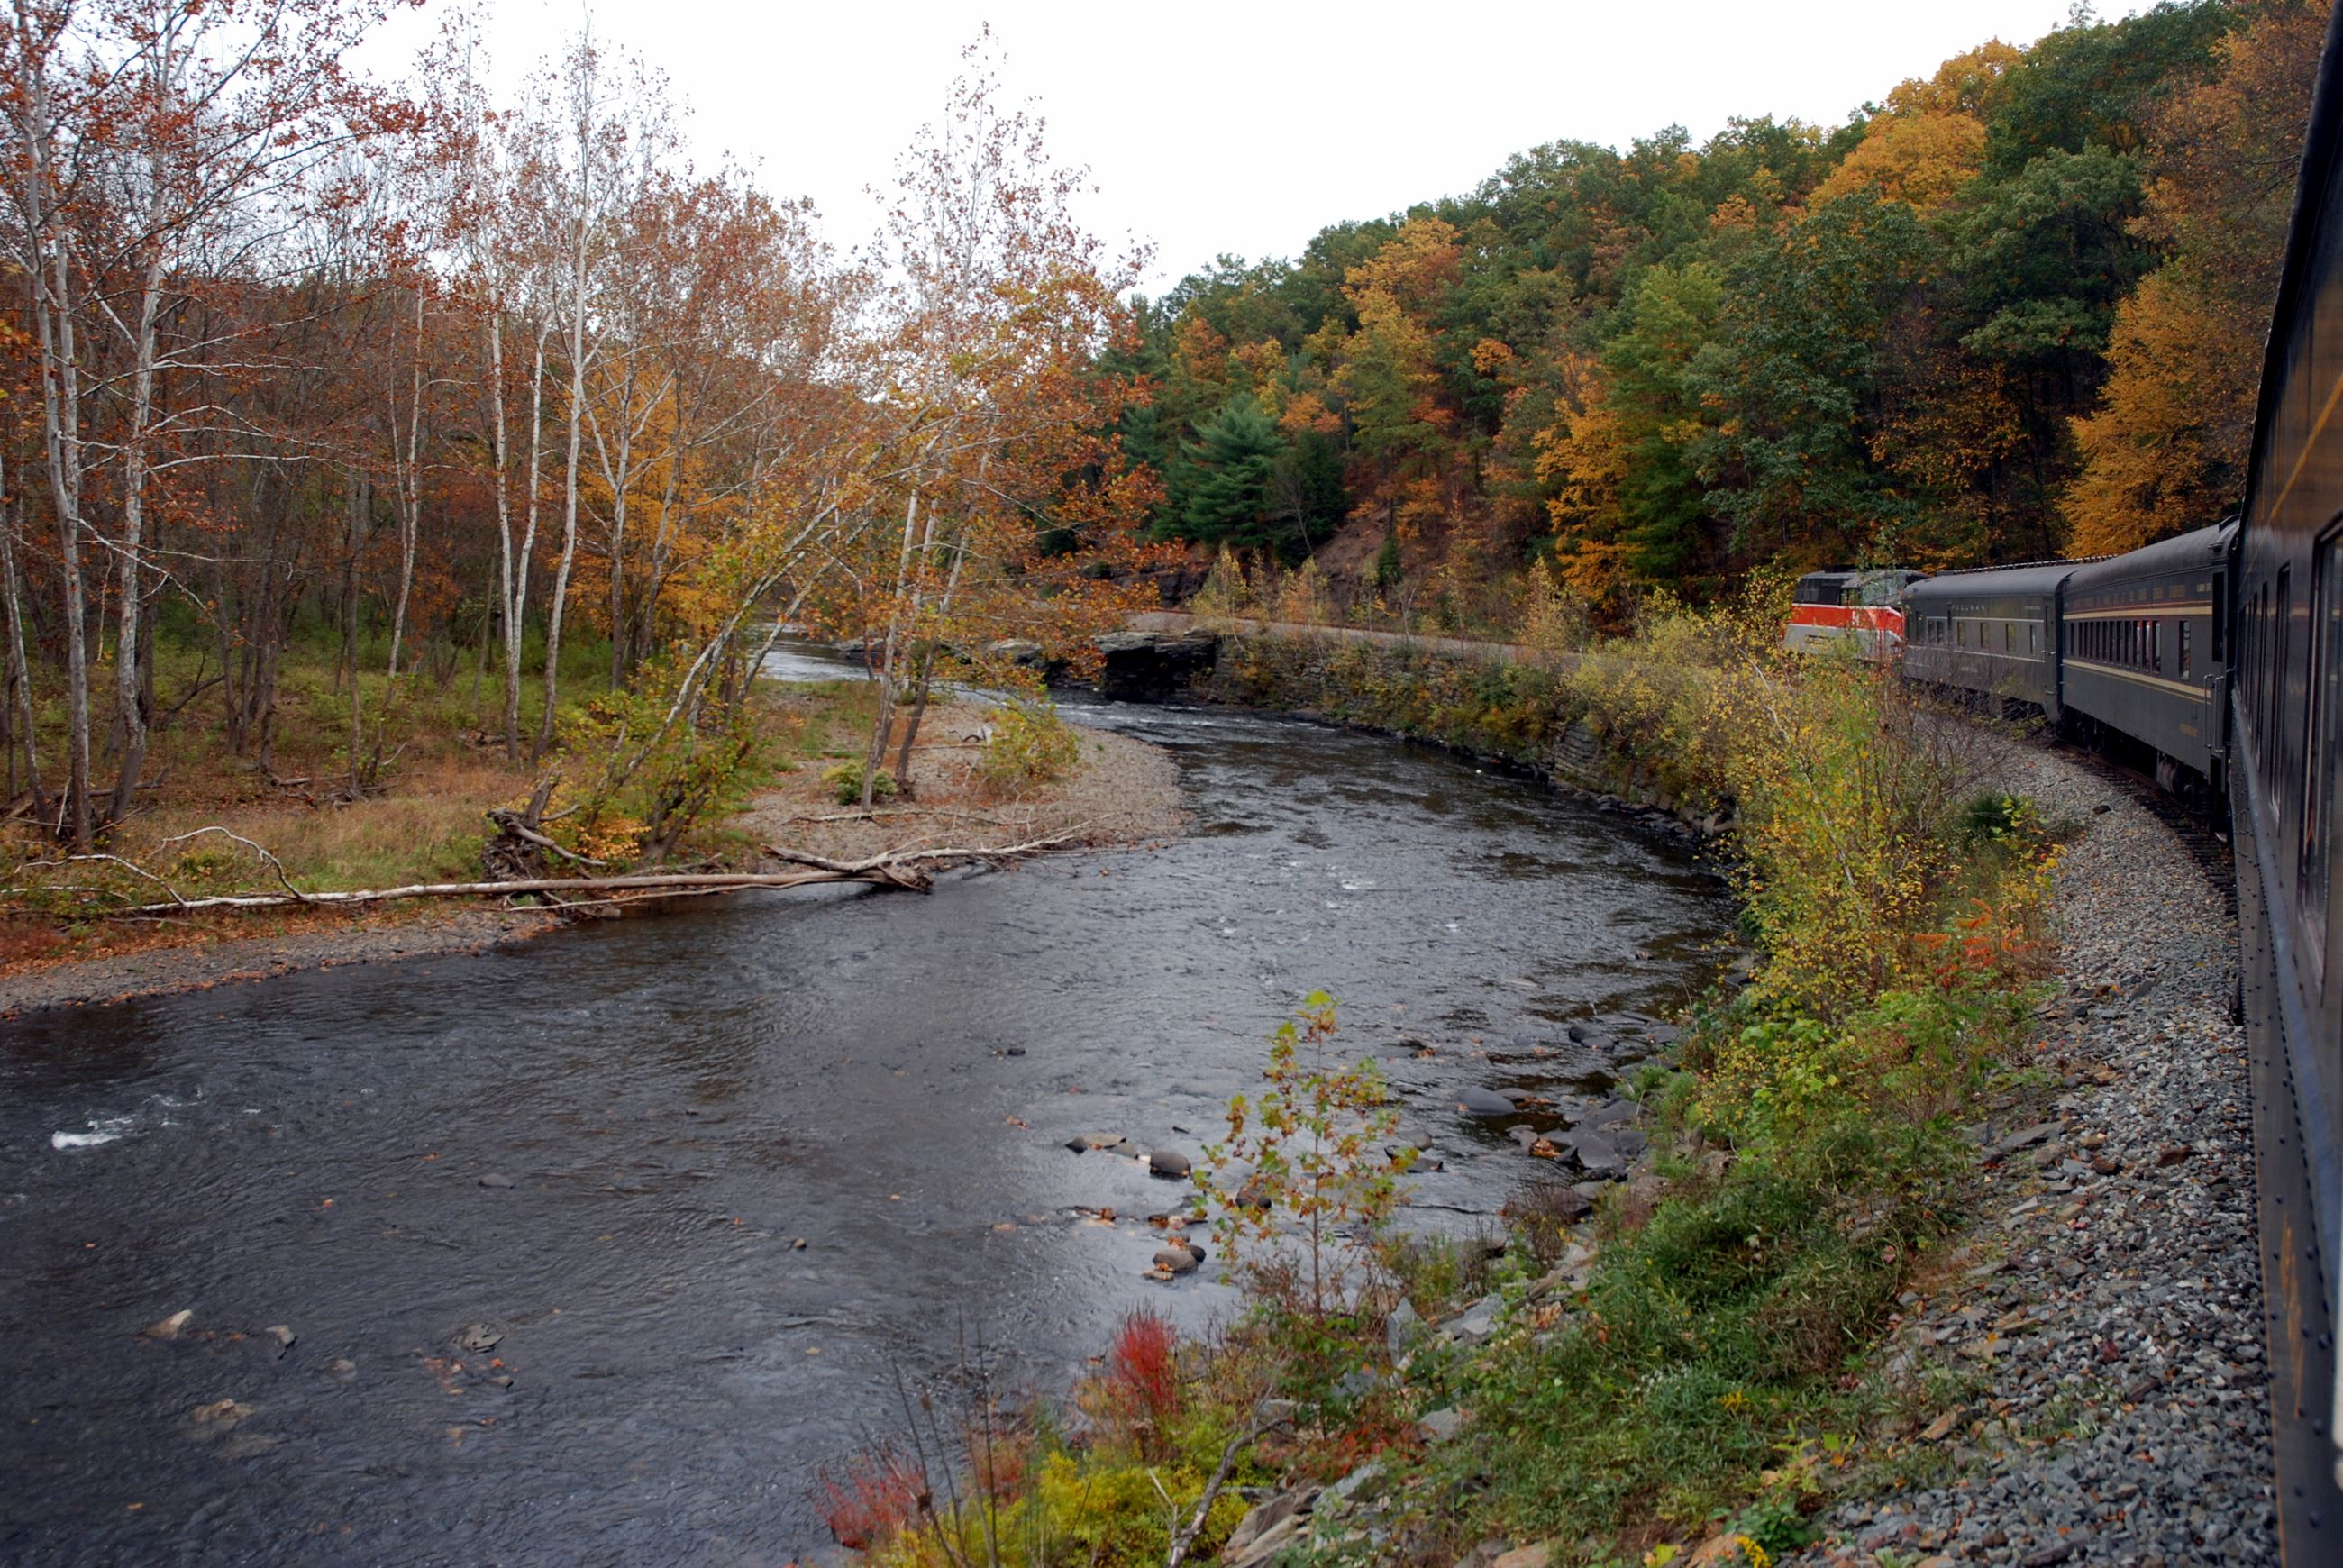 An image of the Lackwaxen River and the Stourbridge Line train cars trailing around a bend.